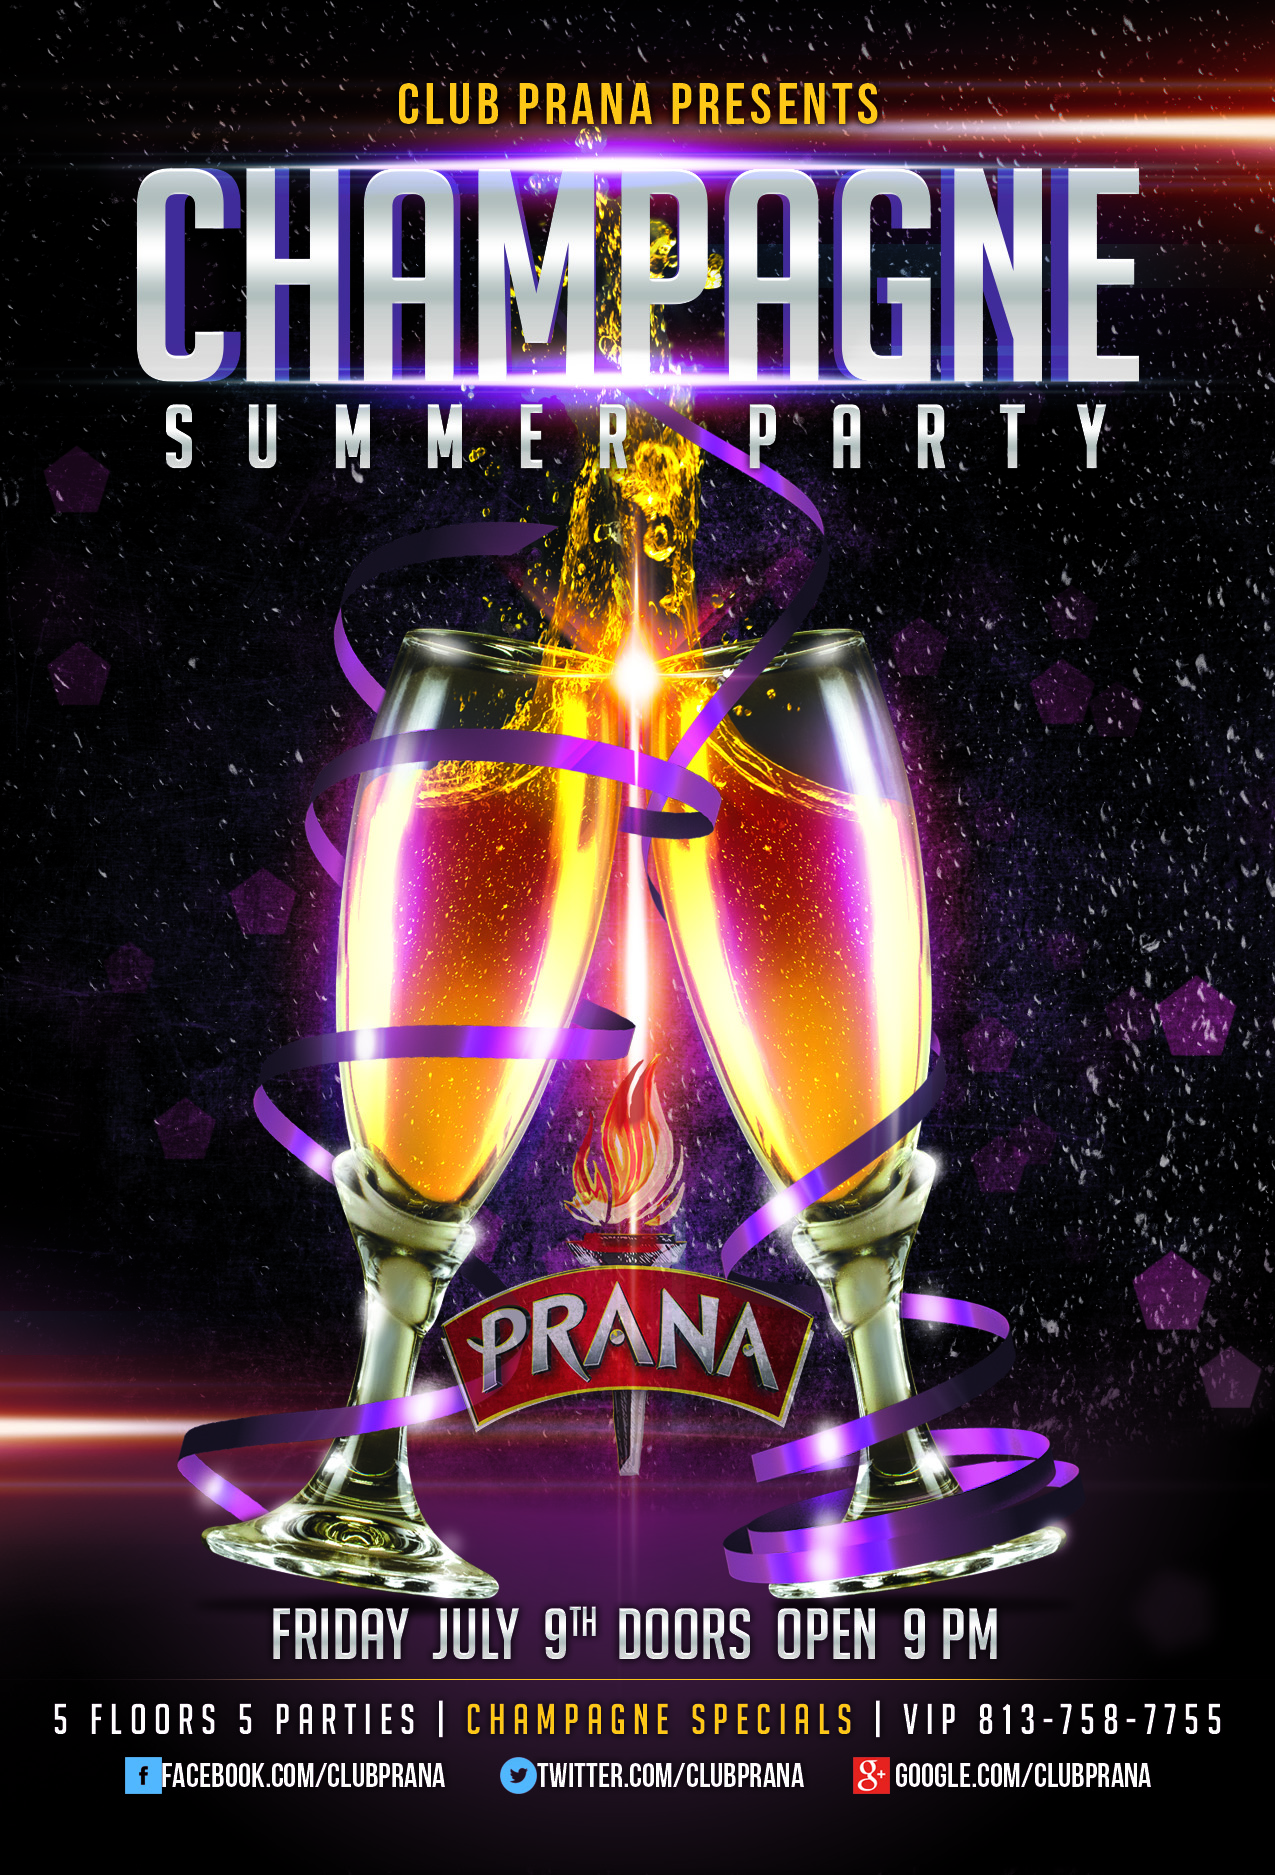 Champagne Summer Party At Club Prana